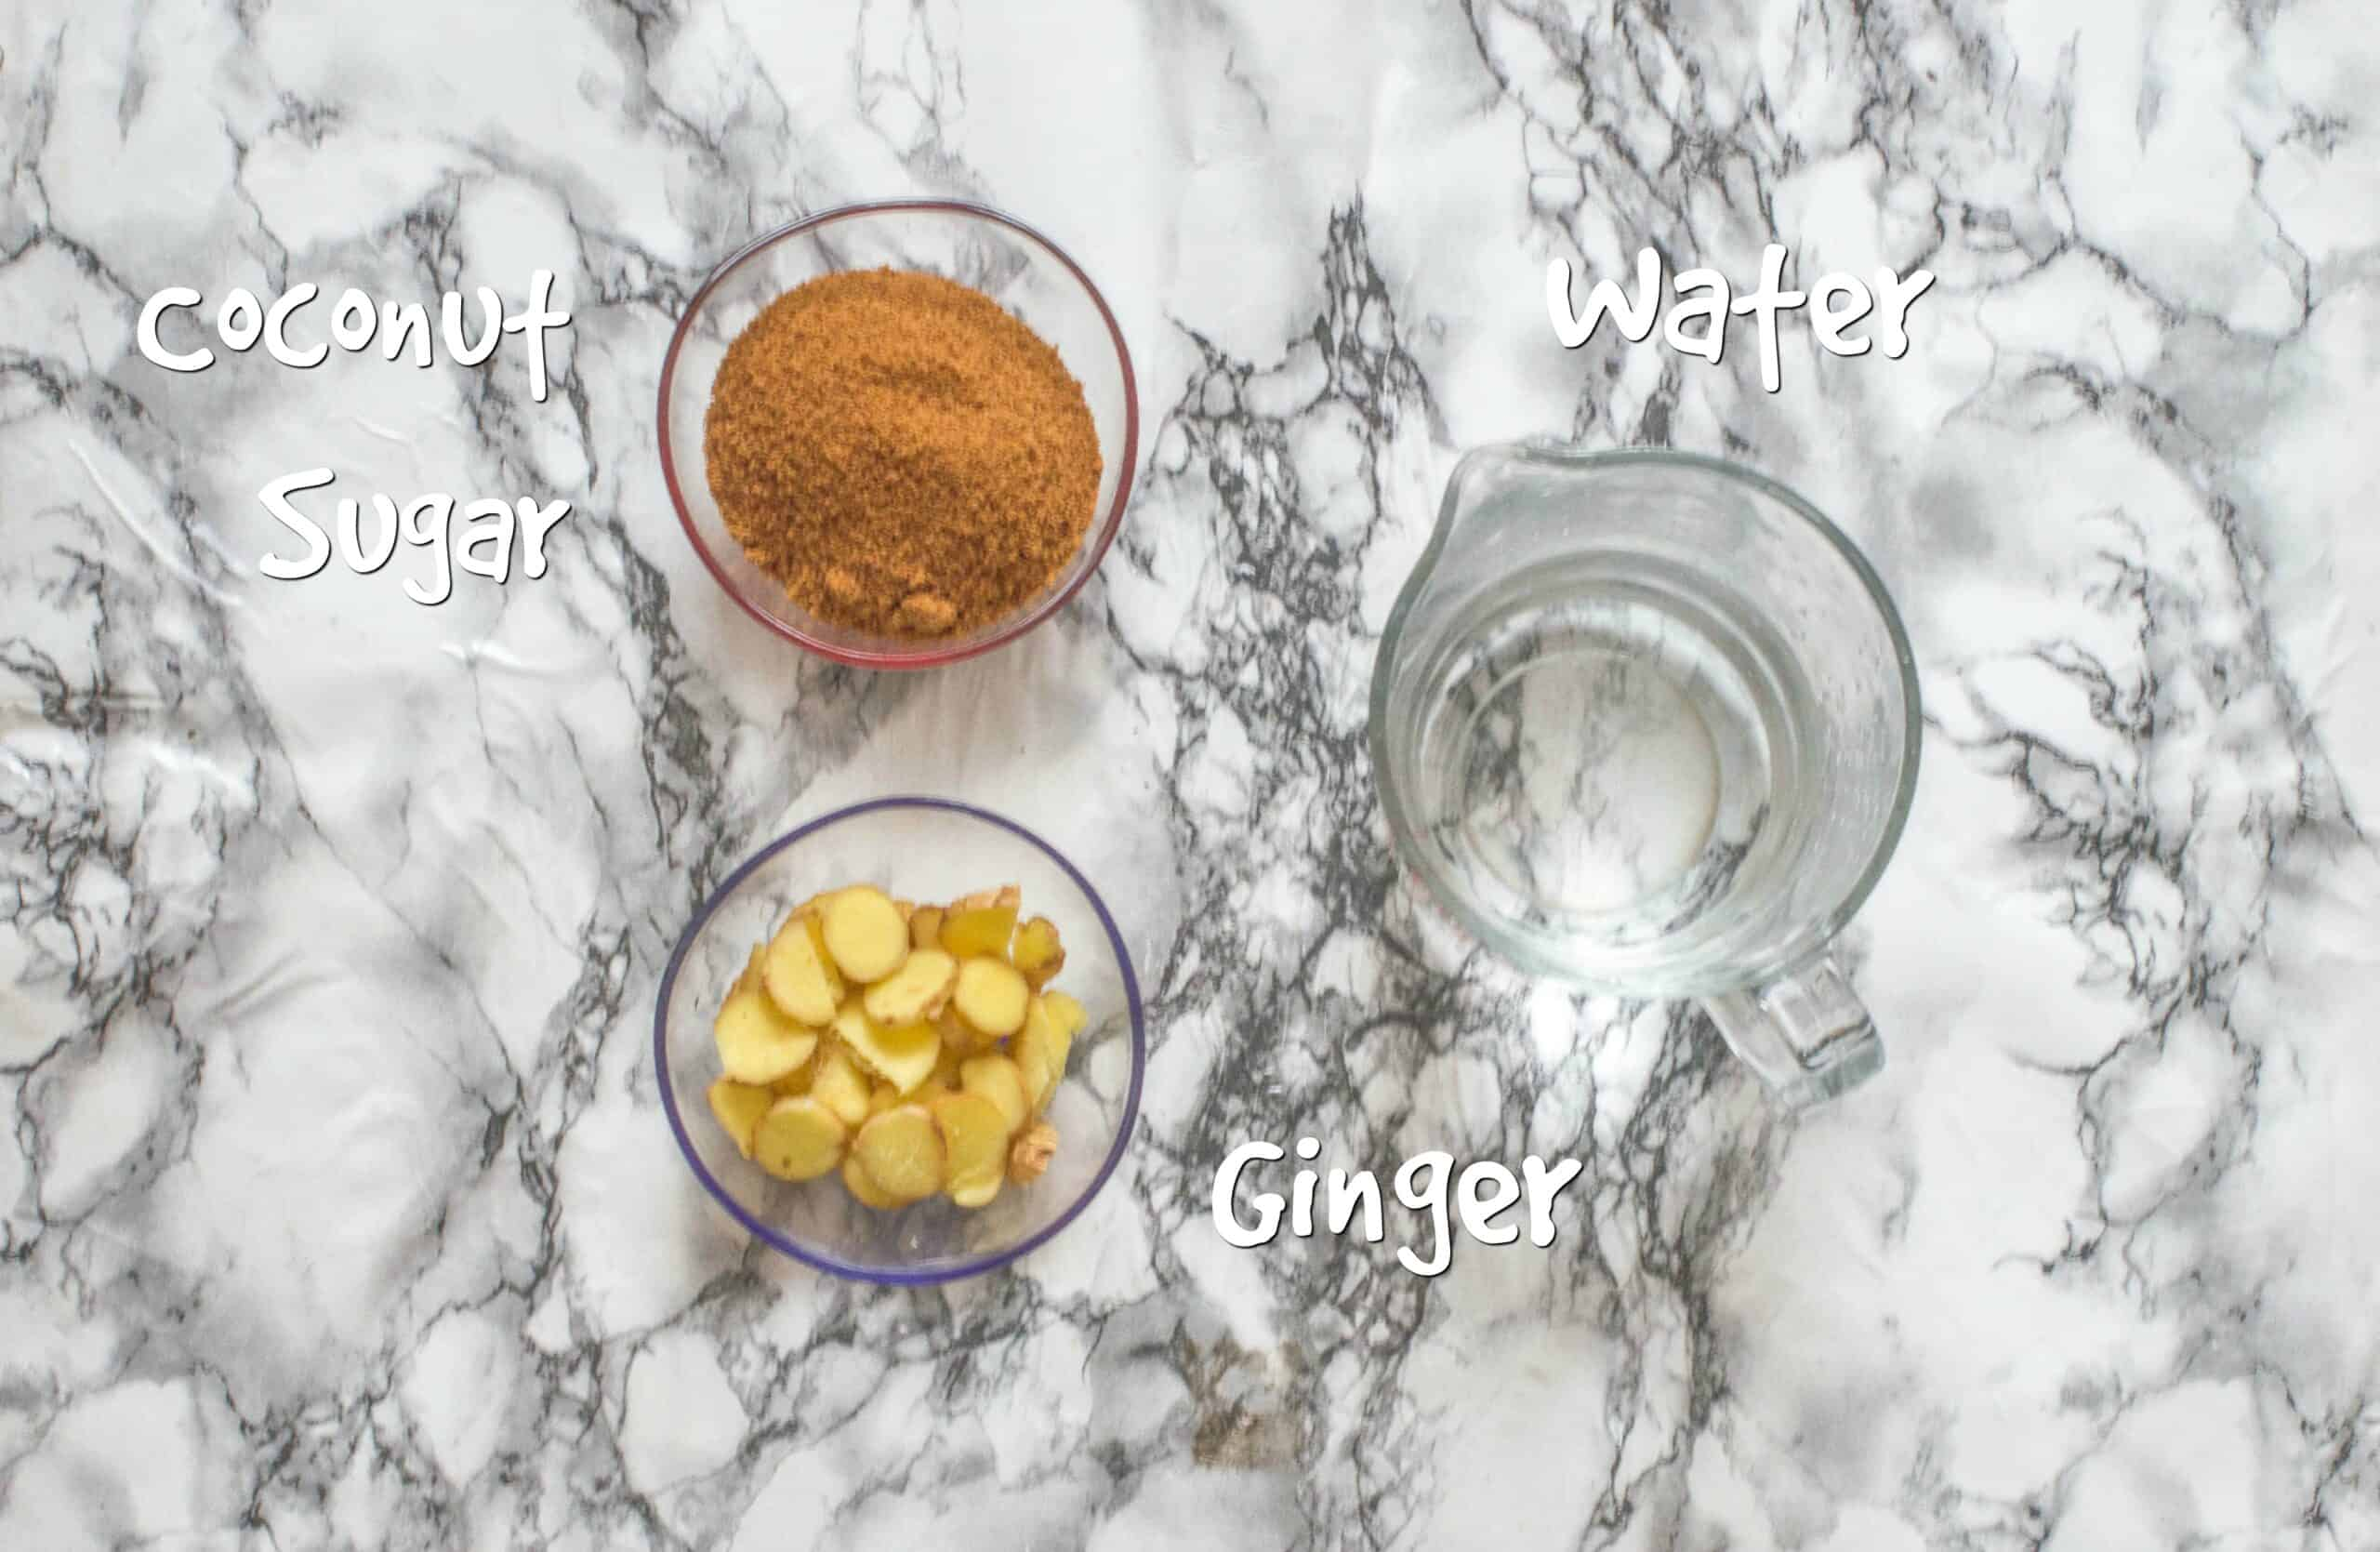 ingredients for ginger syrup